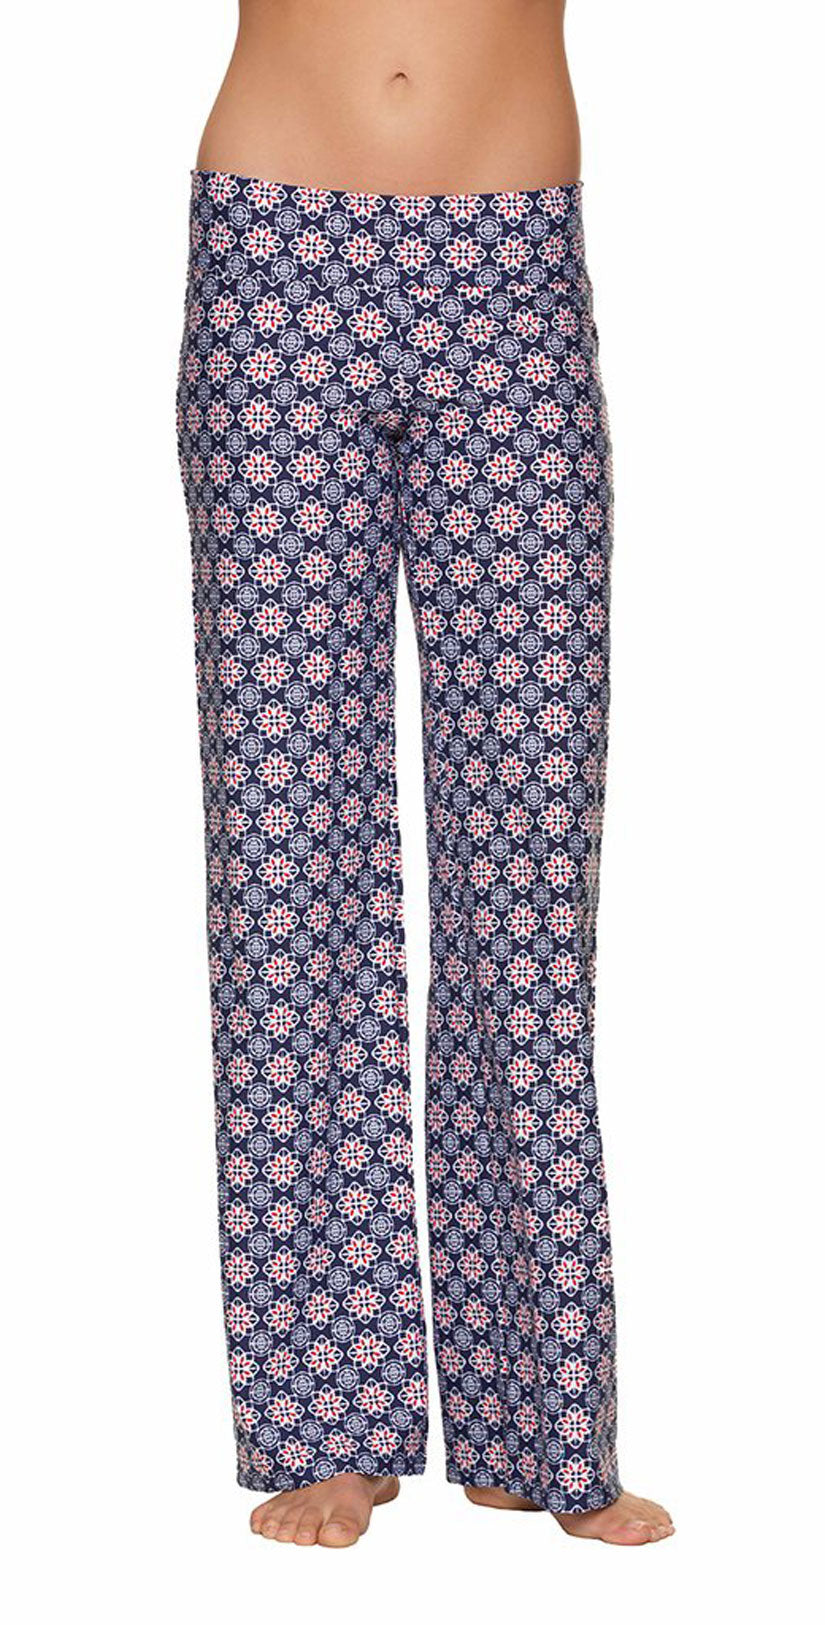 Helen Jon Fold-Over Beach Pant in Compass Geo front